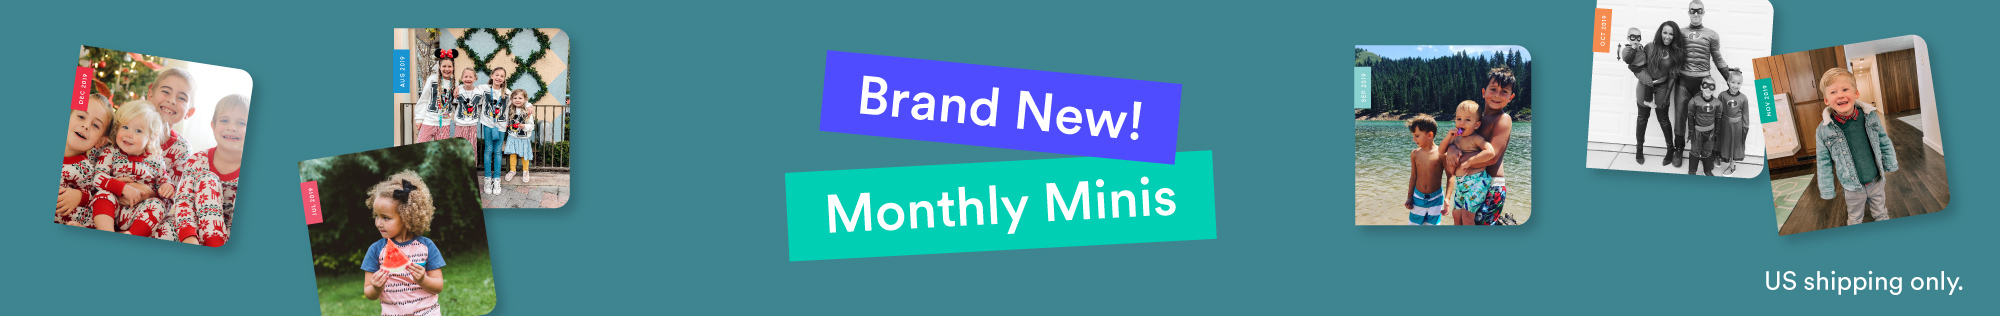 Monthly Minis, Mini photo books